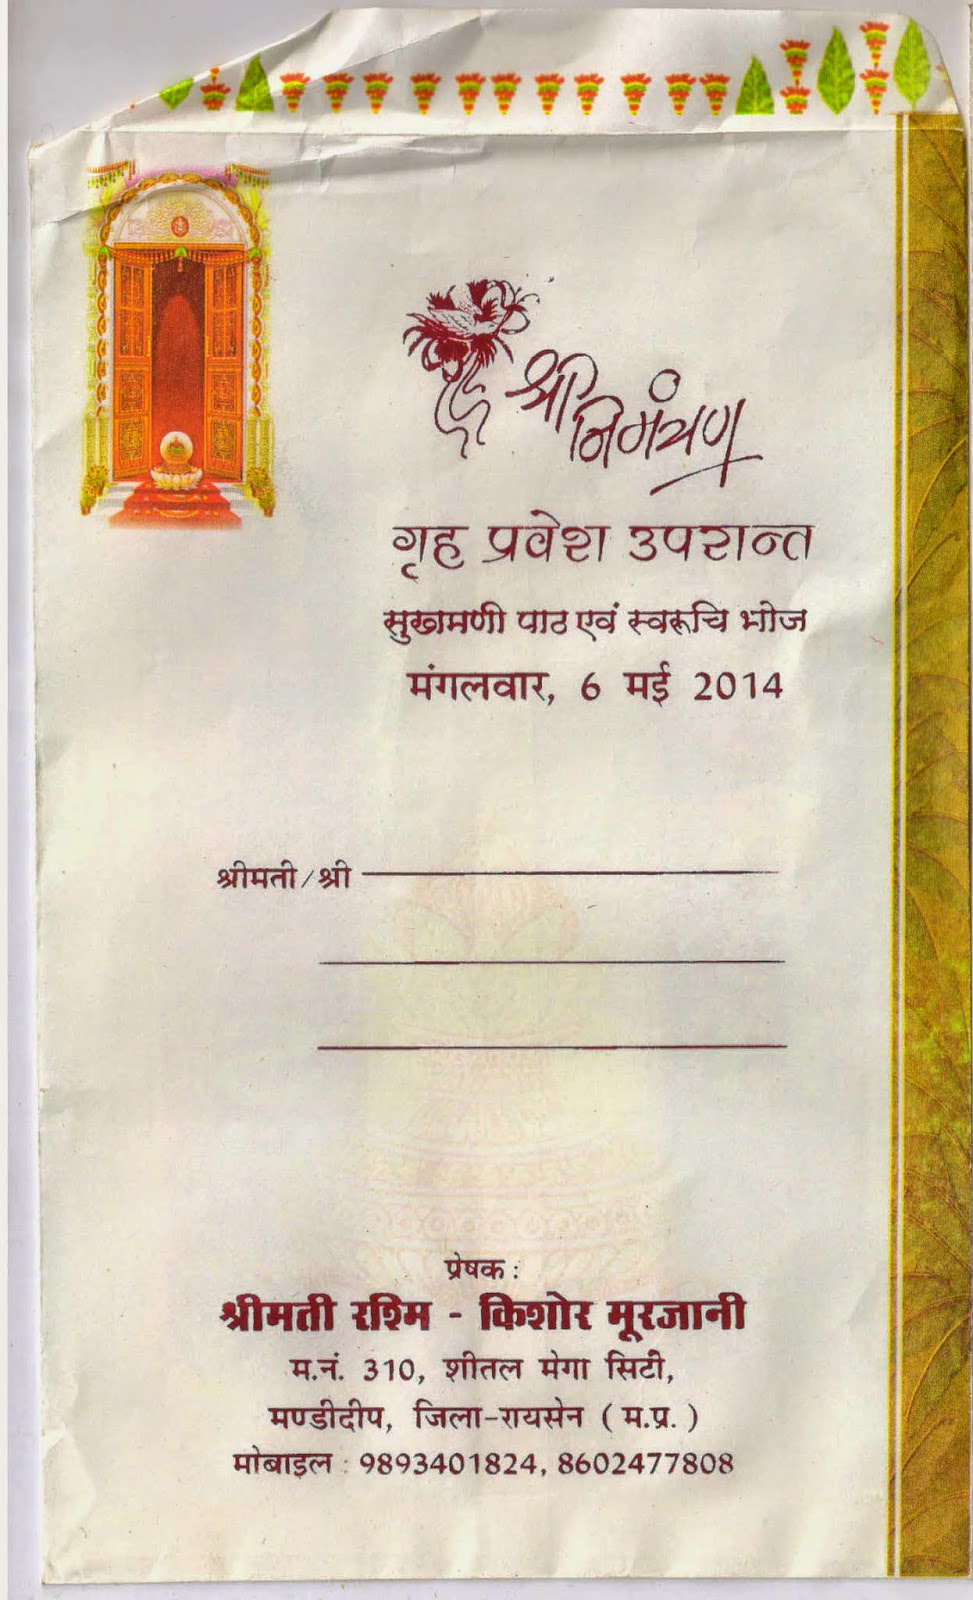 Griha pravesh invitation card format in hindi invitationjpg griha pravesh invitation cards in hindi invitationjpg com stopboris Images